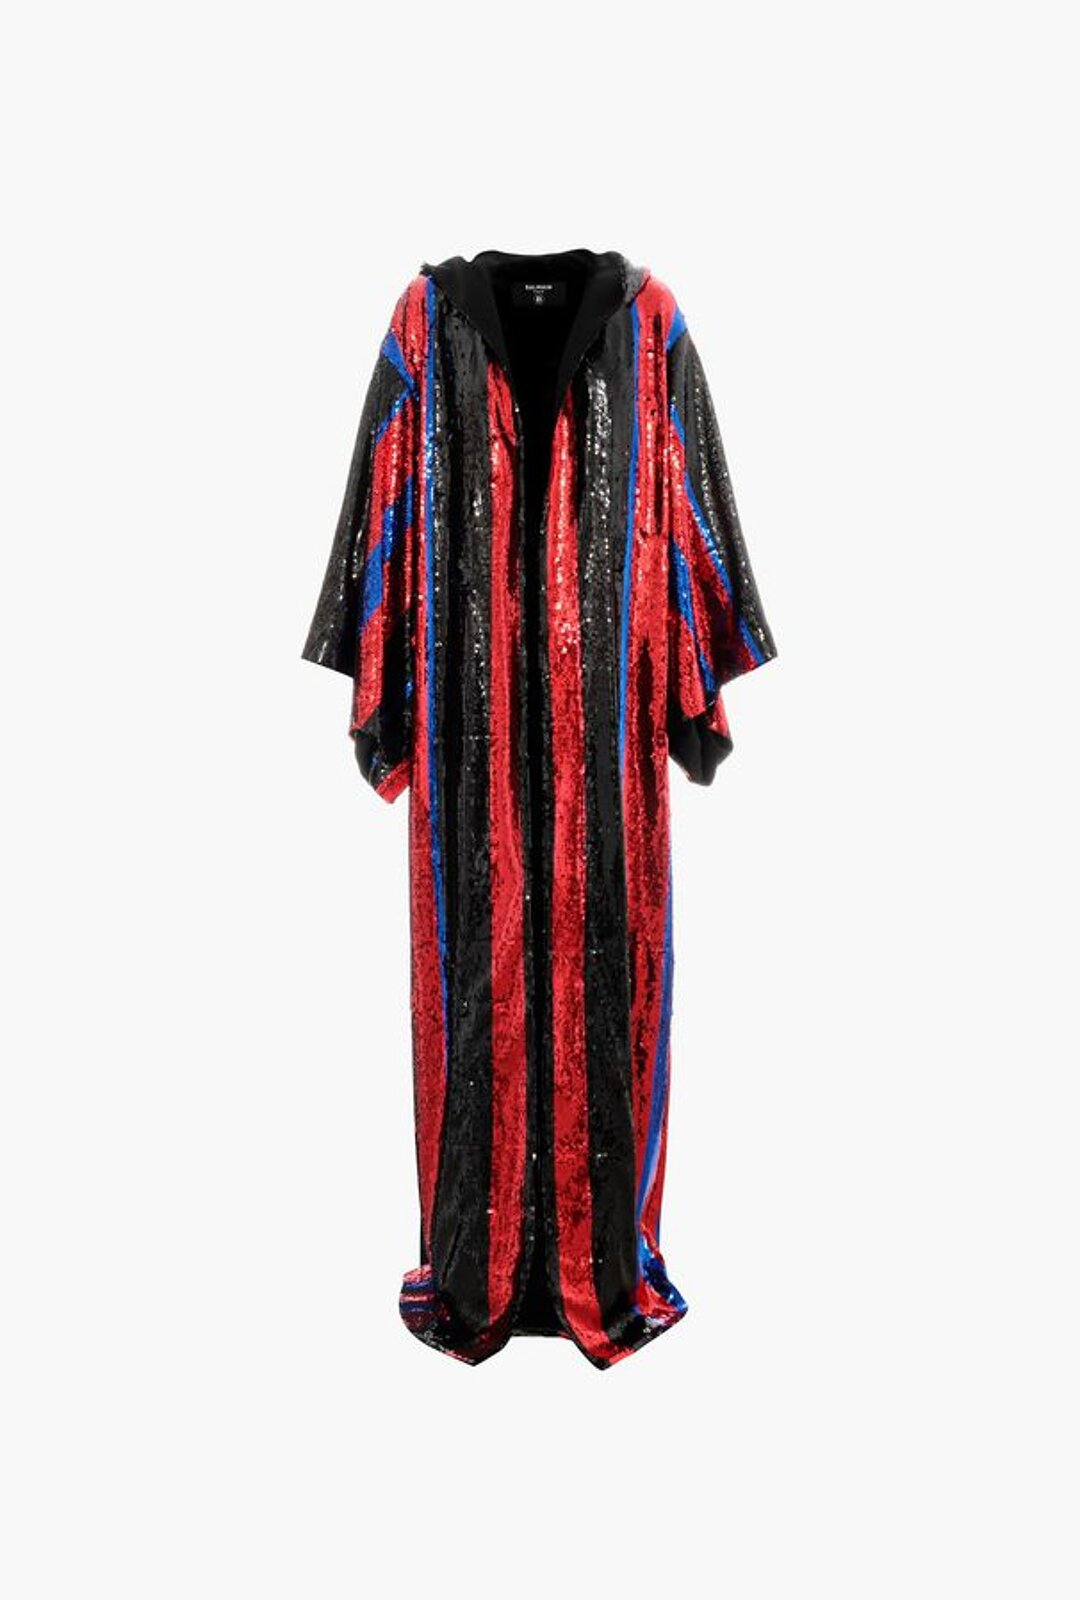 Black, Blue And Red Sequin Kimono With Hood Balmain X Puma - Balmain